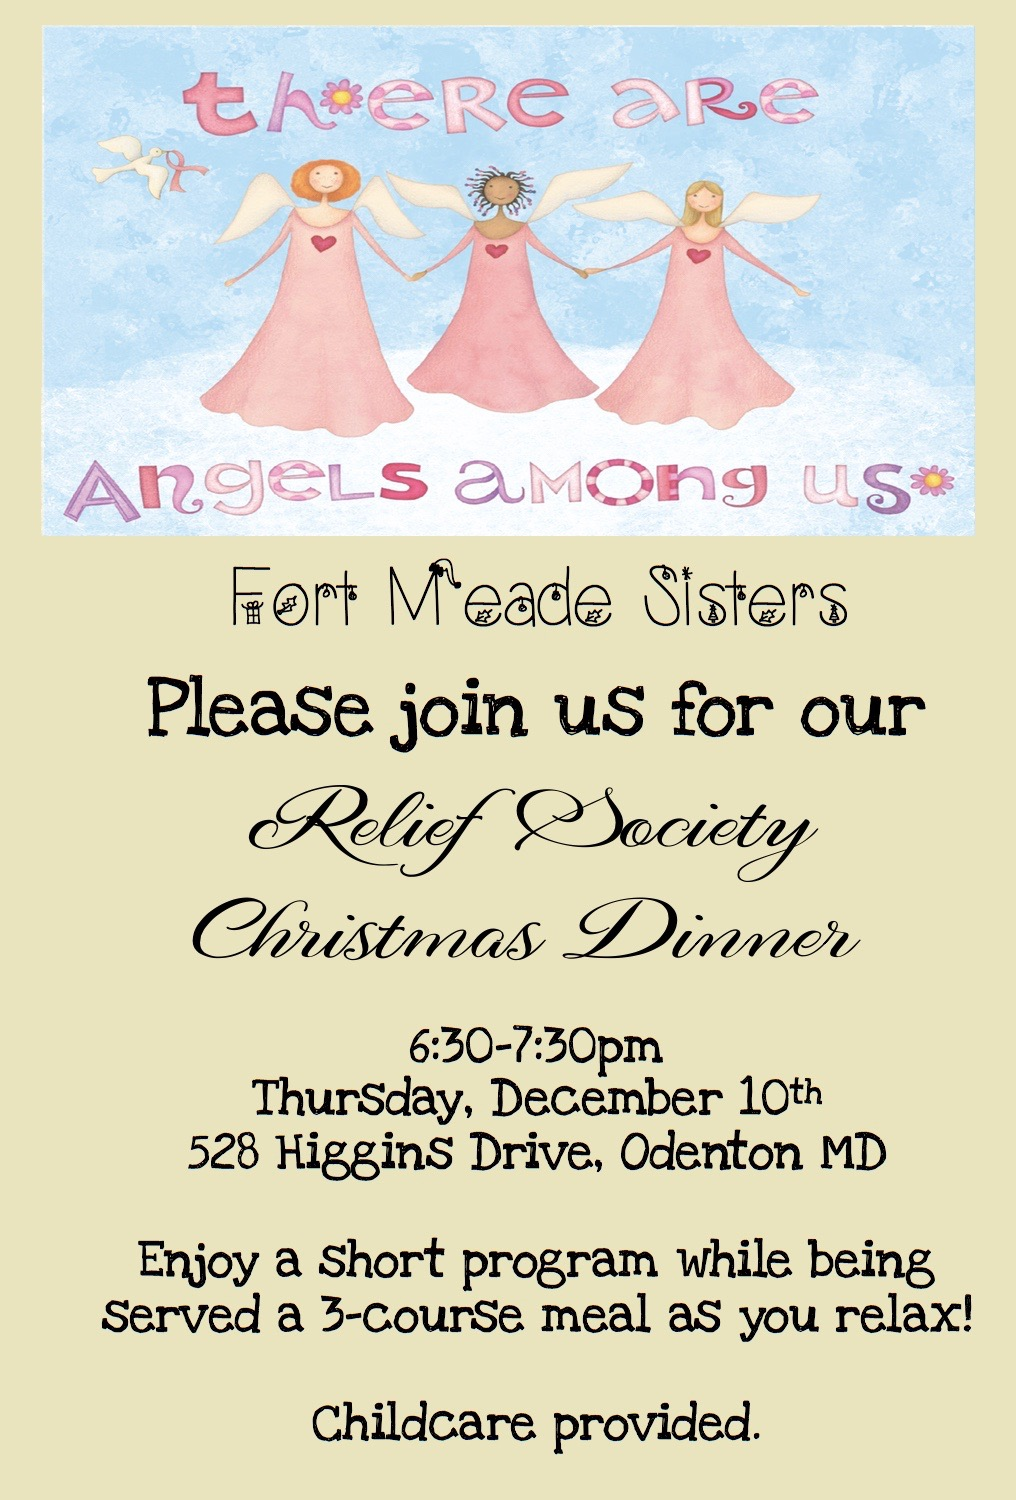 Angels Among Us Relief Society Christmas Dinner